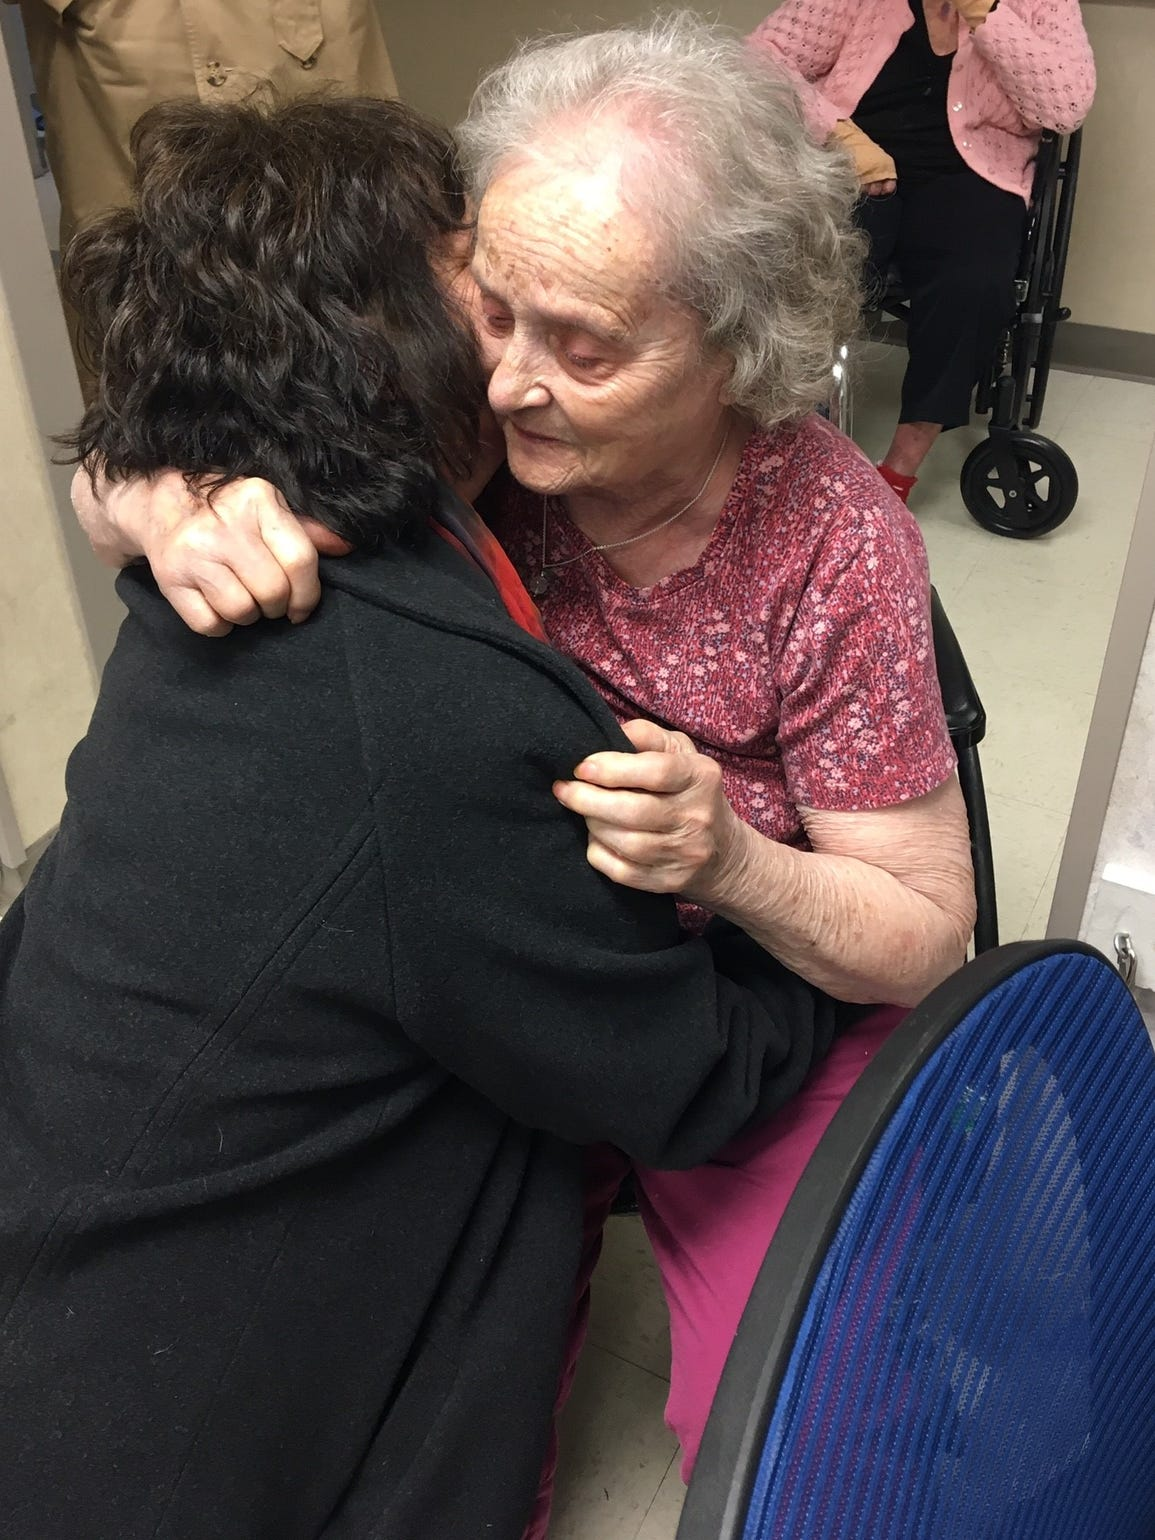 Britt Kennerly hugs her mother, Helen Harney, before leaving Kentucky to return to Florida in December 2017.